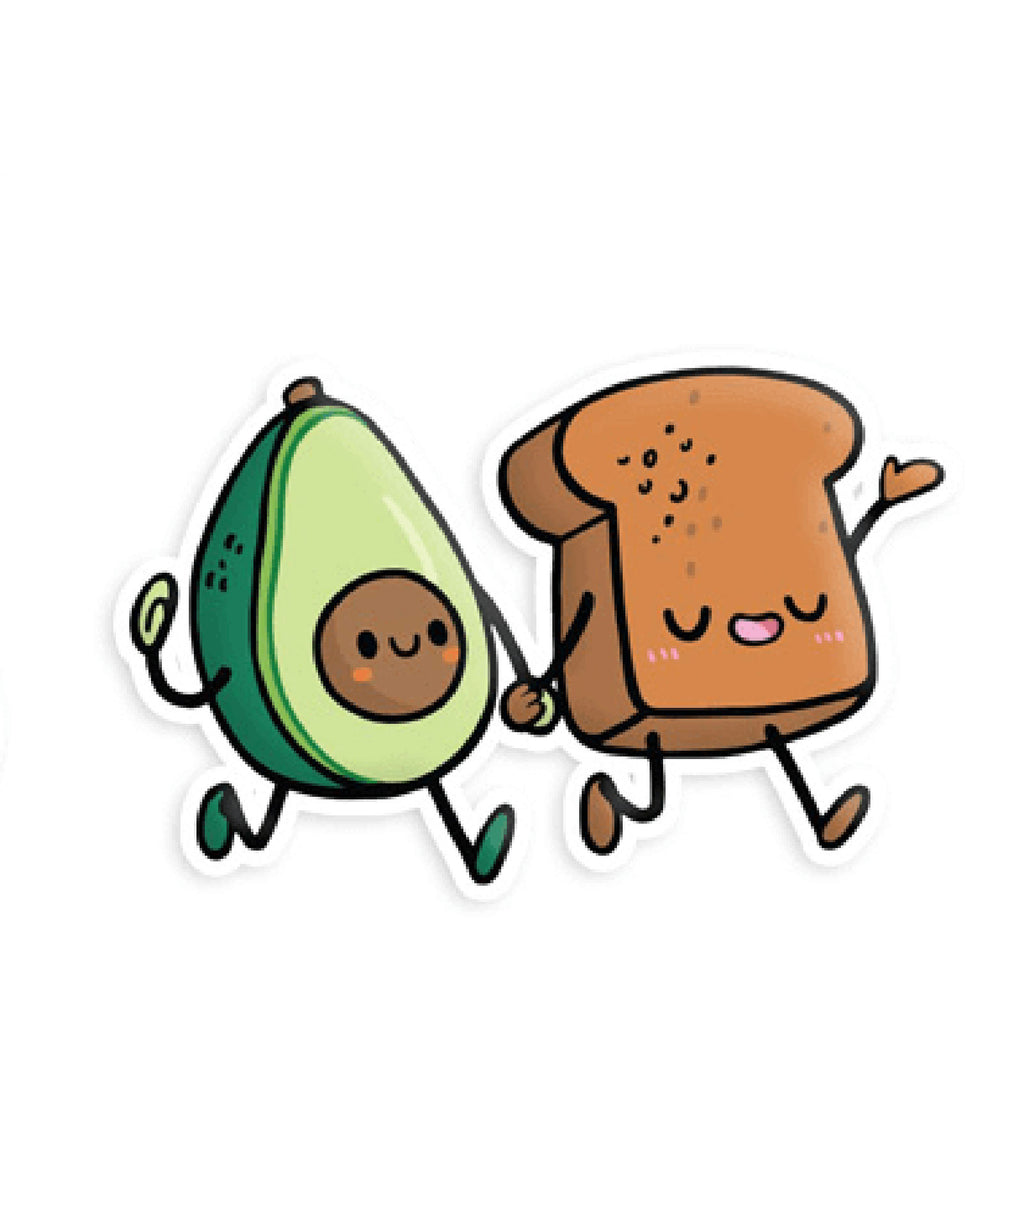 Squishable Vinyl Sticker Avocado Toast Friends